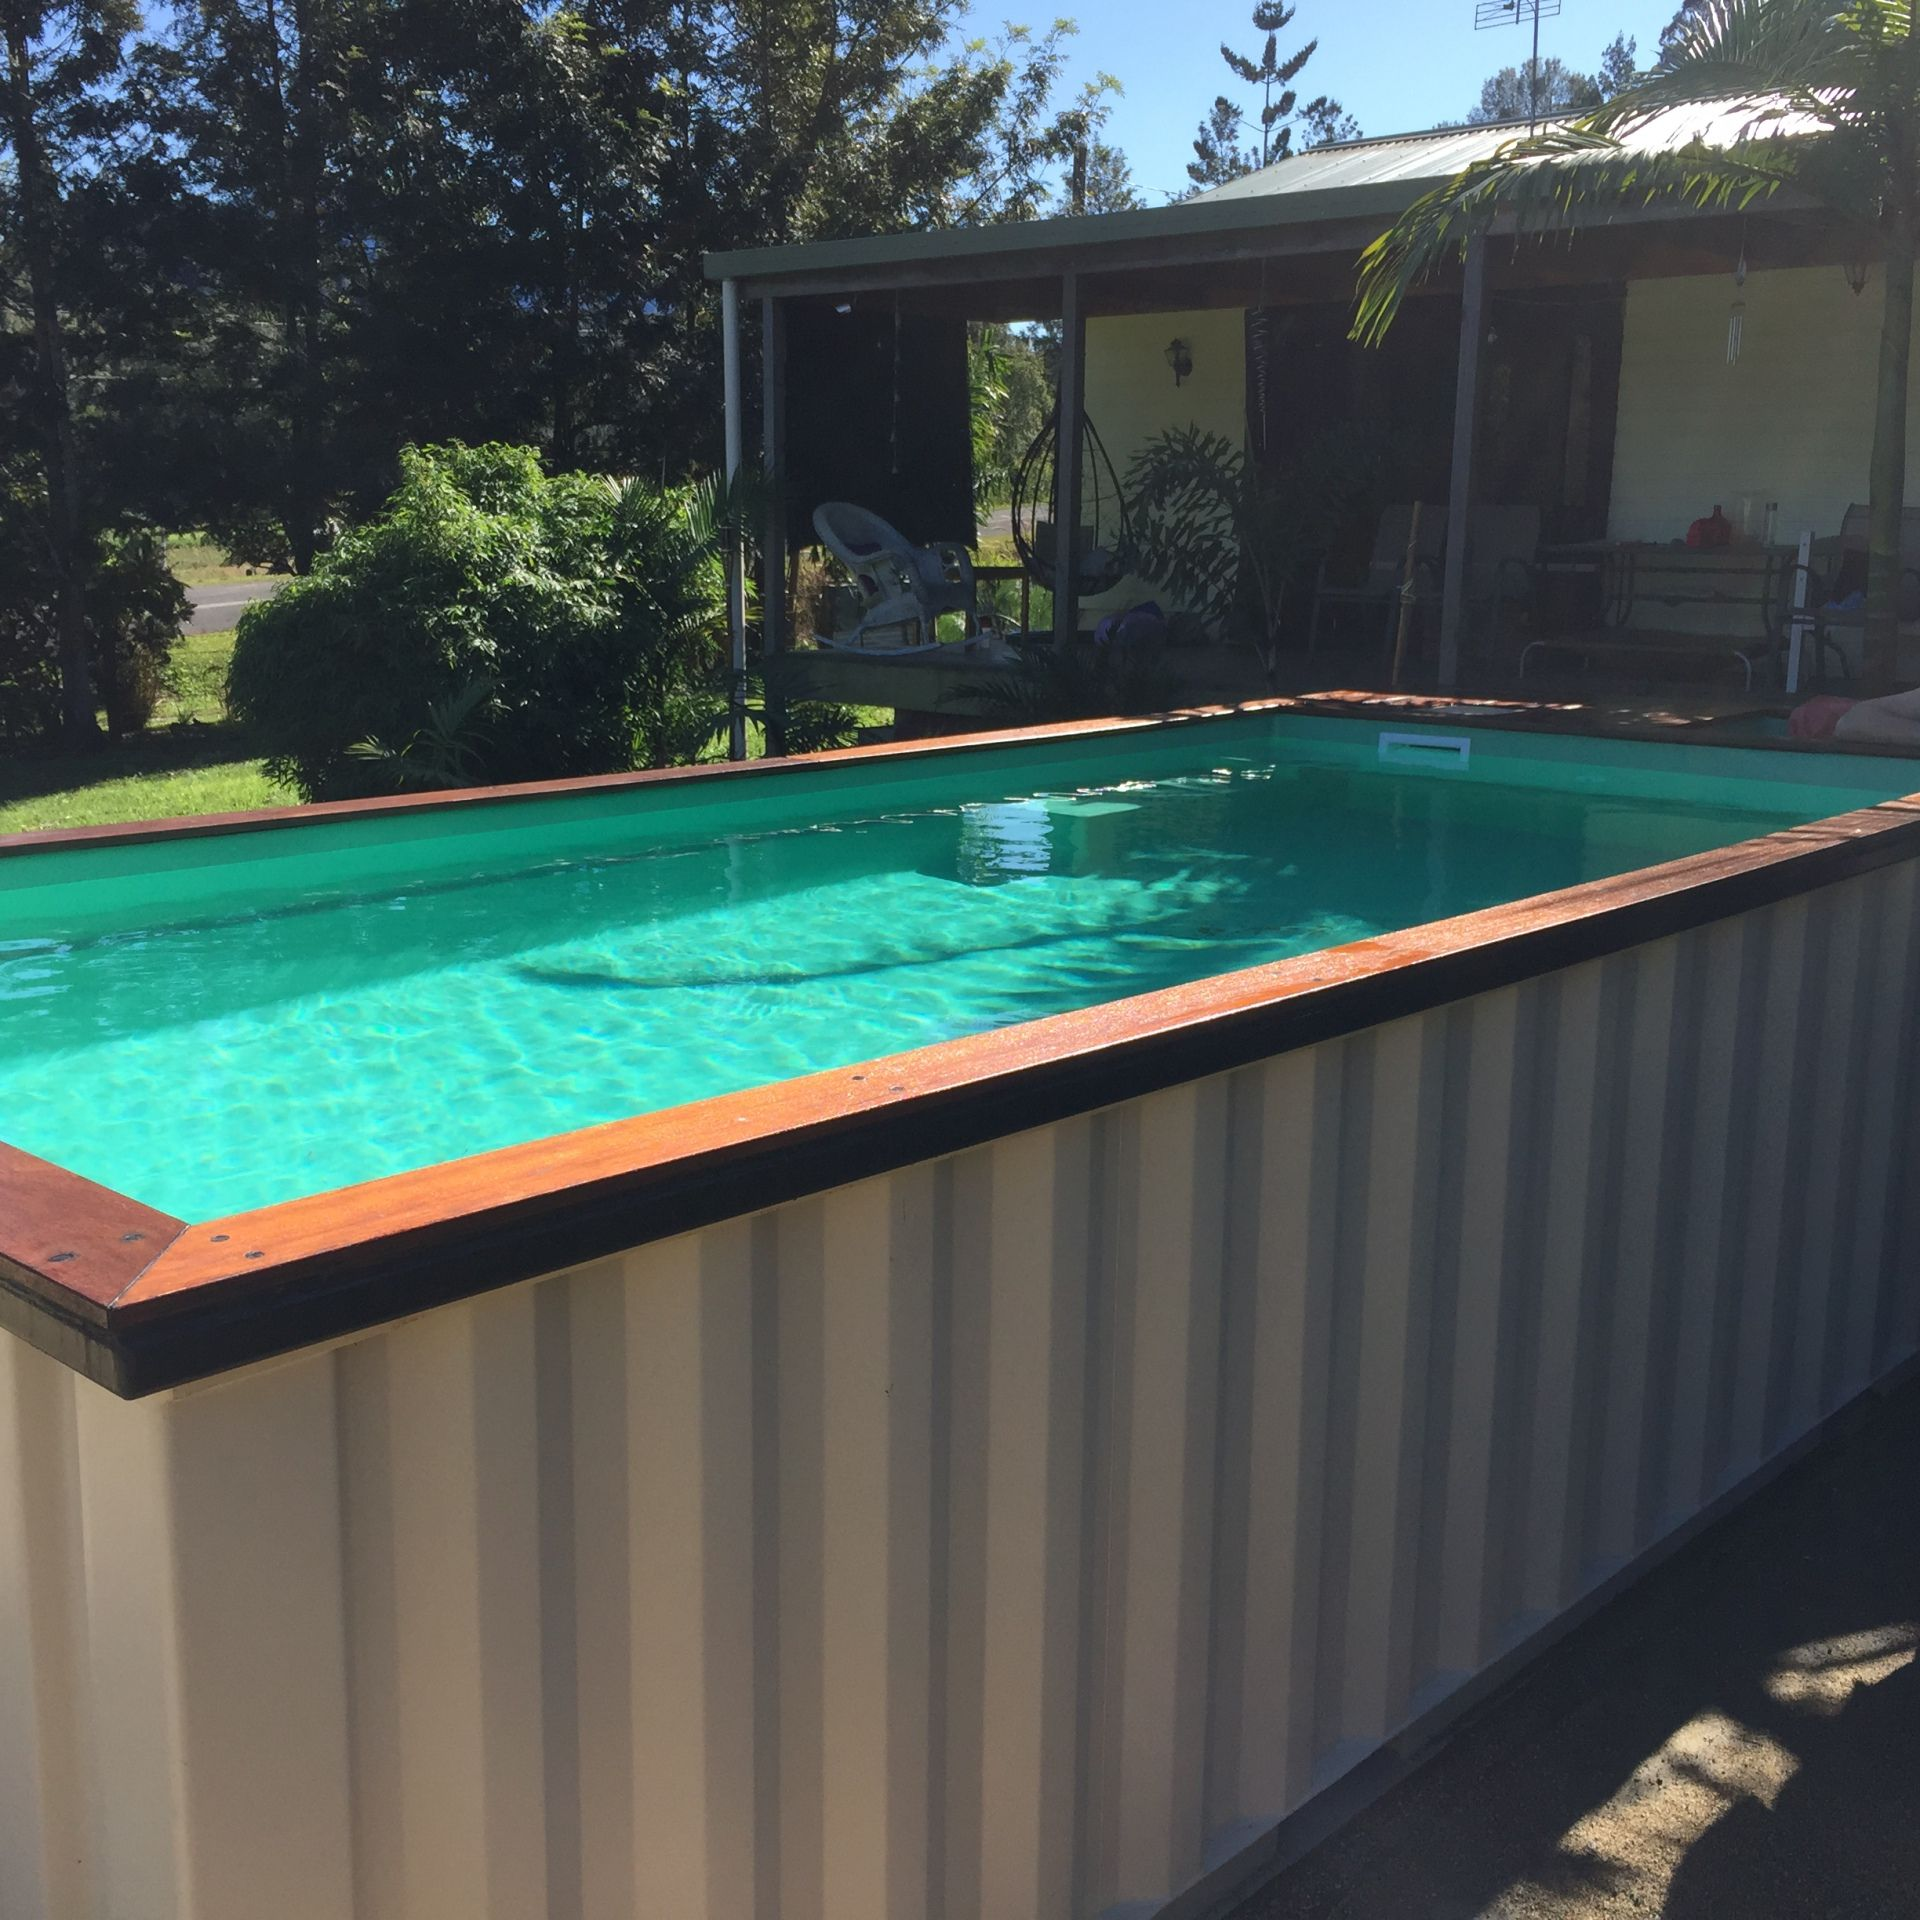 Above Ground Pool Made From A Recycled Shipping Container With Fiber Glass Interior And Solid